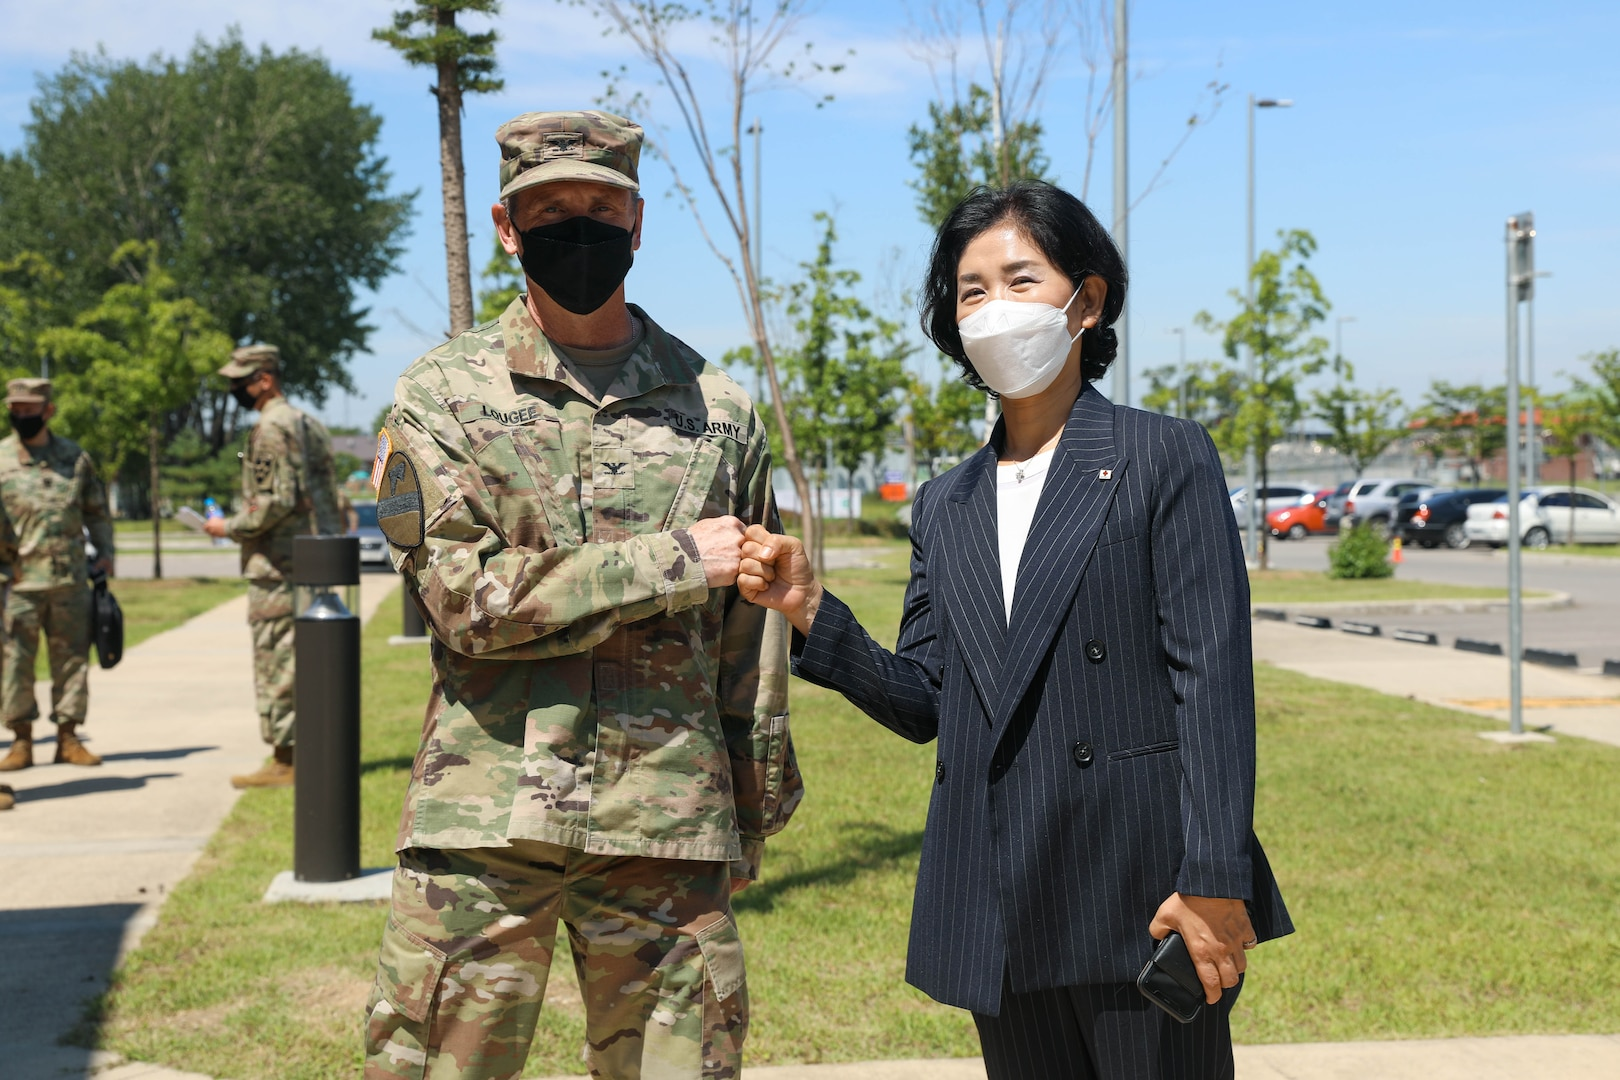 Col. Lougee in uniform and mask stands next to Huh, Boo-ja, the Gyeonggi-do Red Cross Center Director and they give one another a fist bump outside. They stand in front of the blood donation location's parking lot.